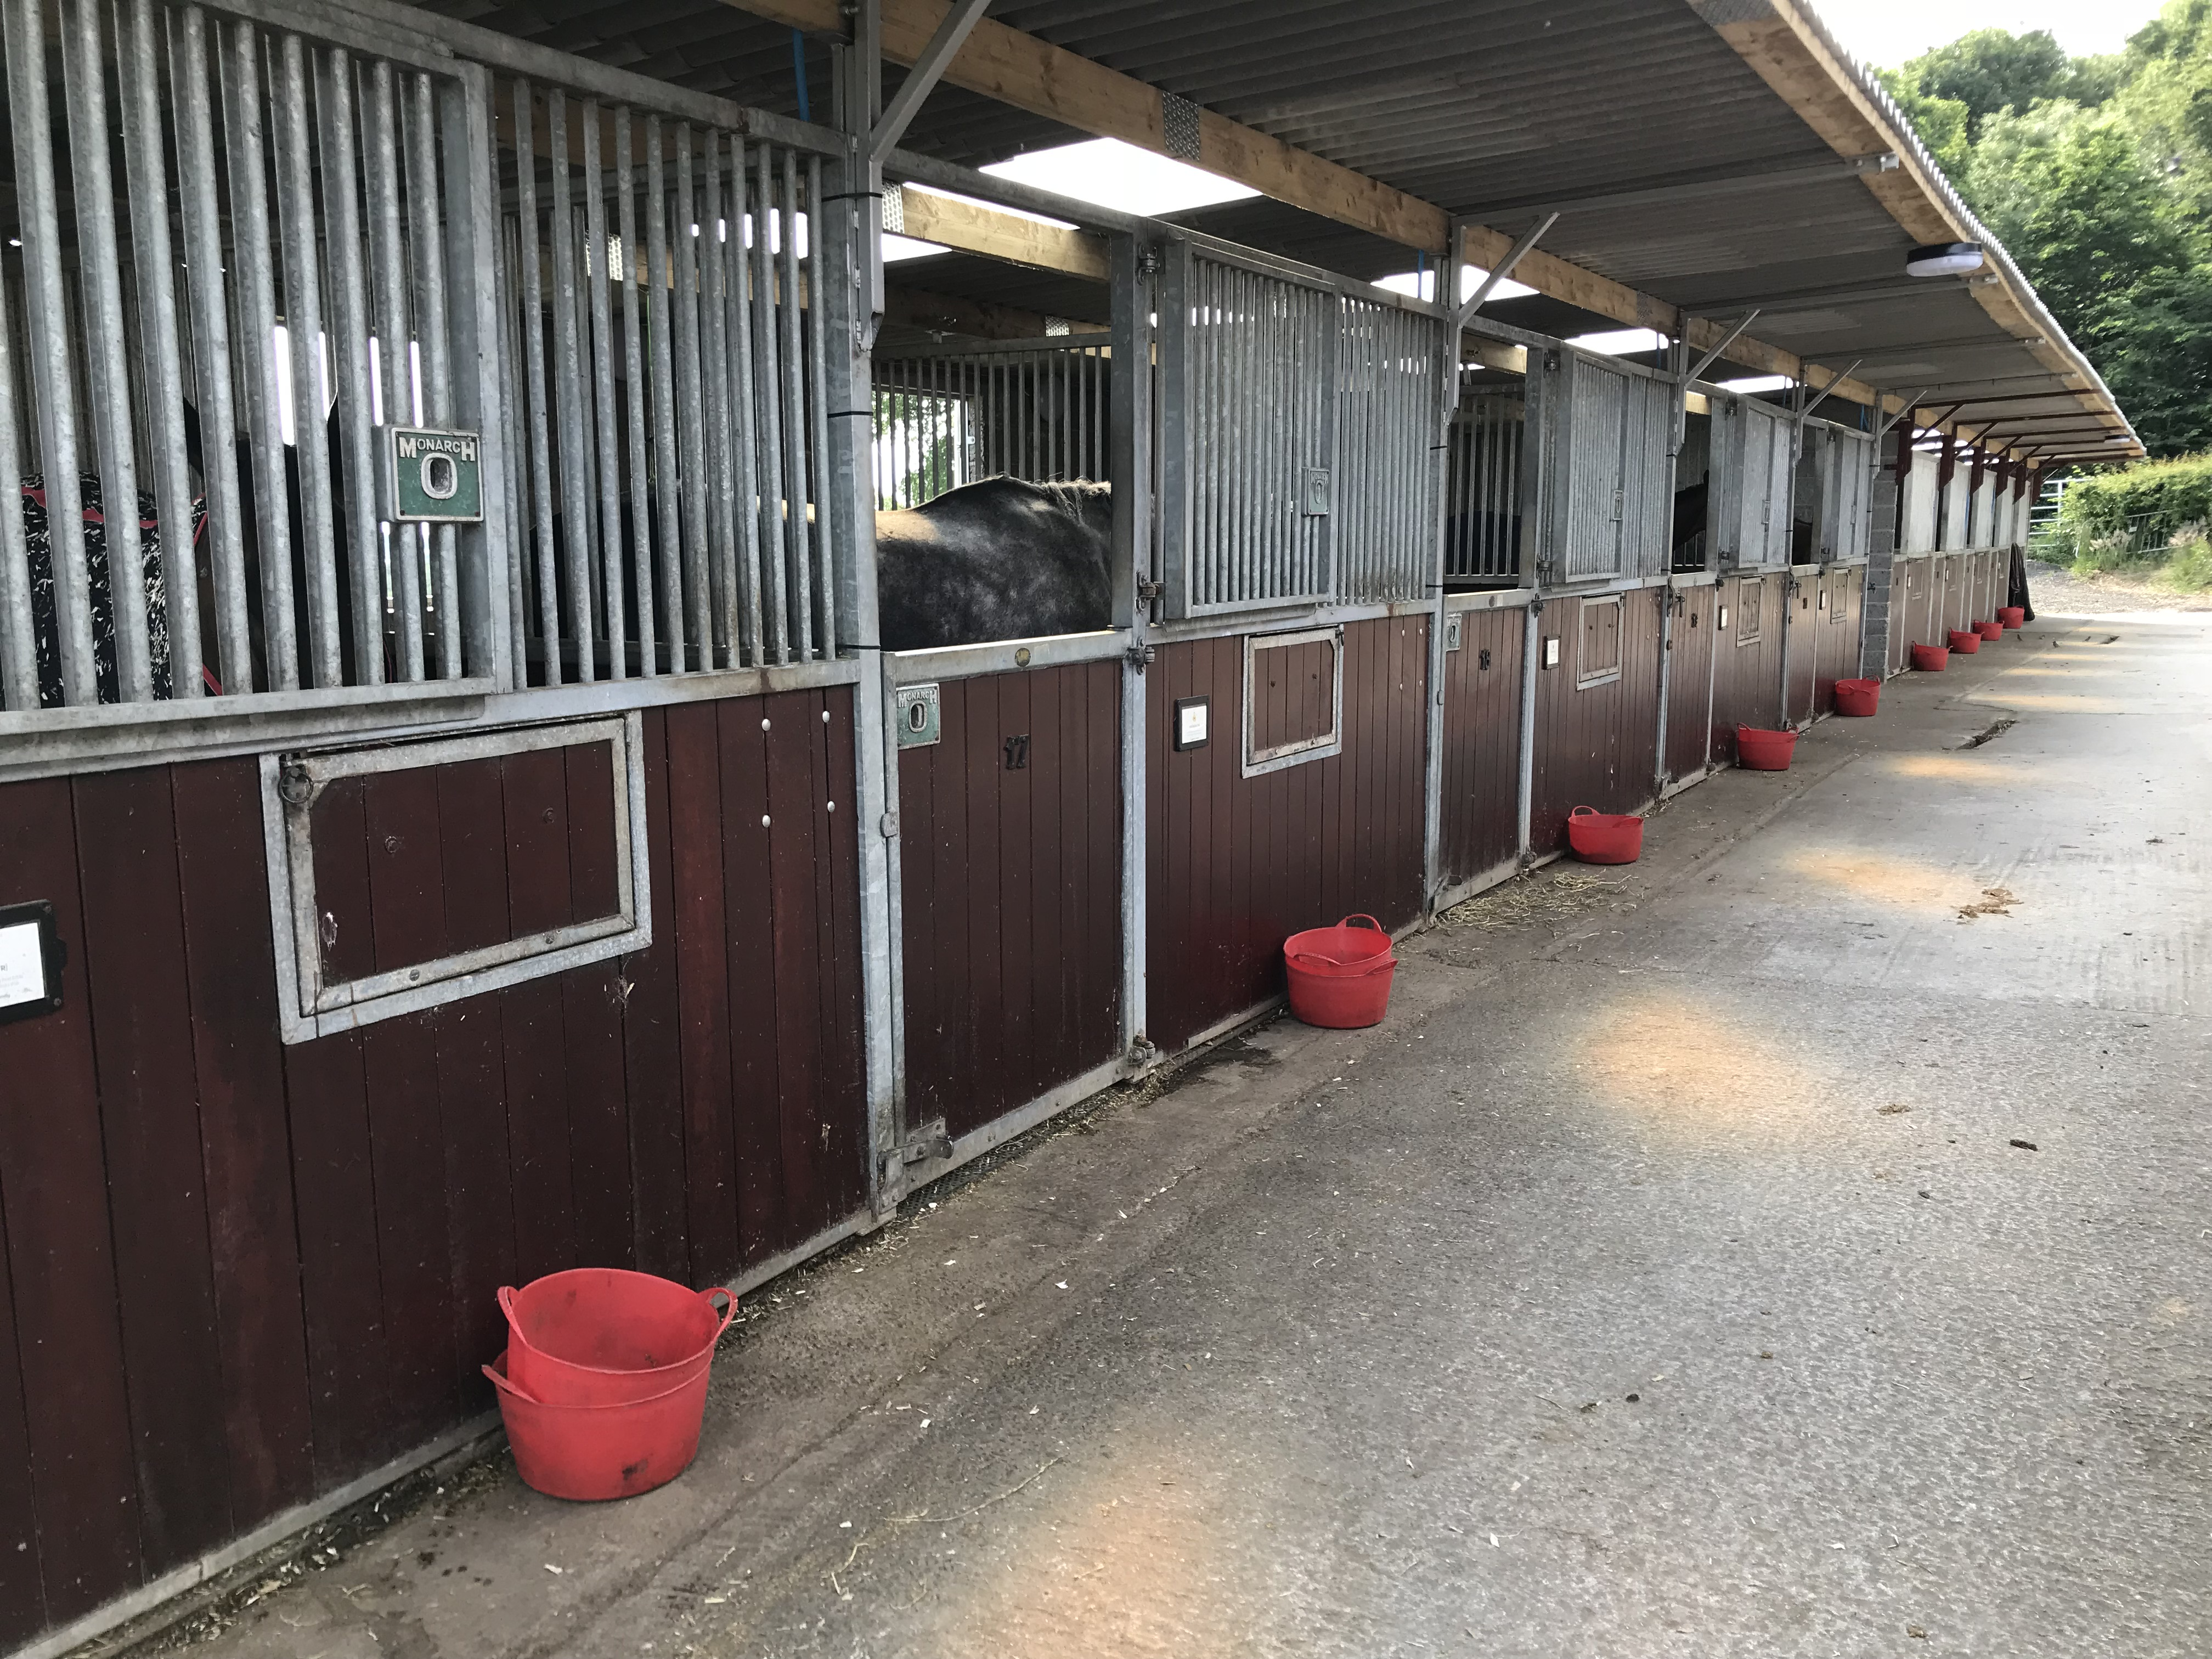 Yard 3 with 10 Stables